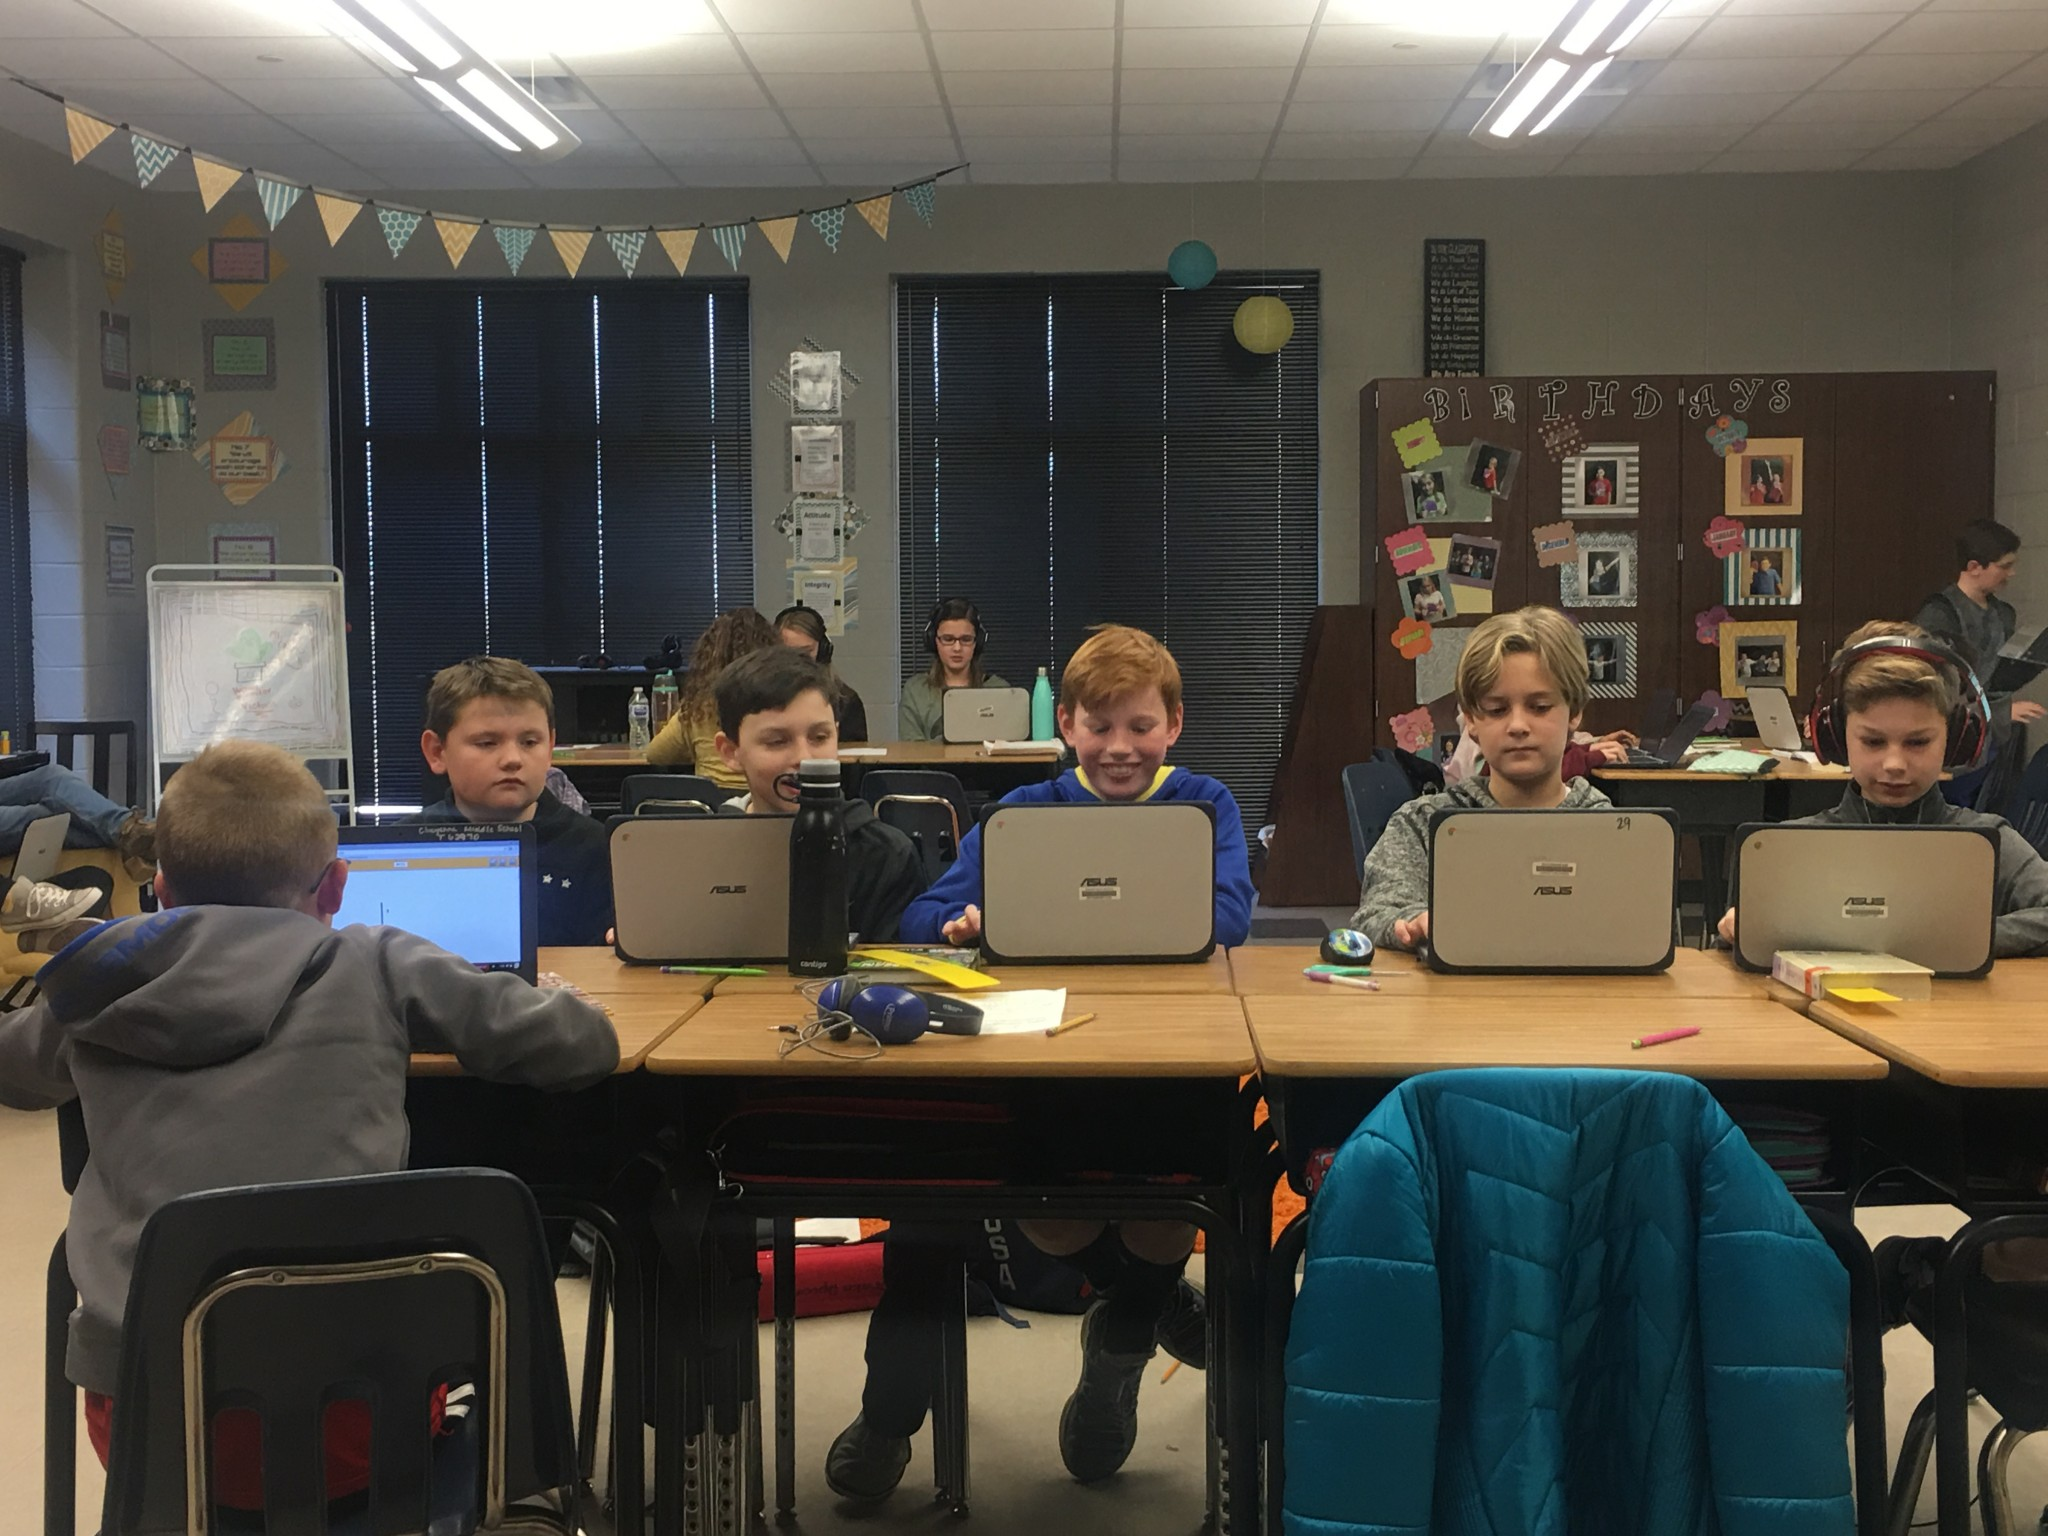 5th grade students with chromebooks